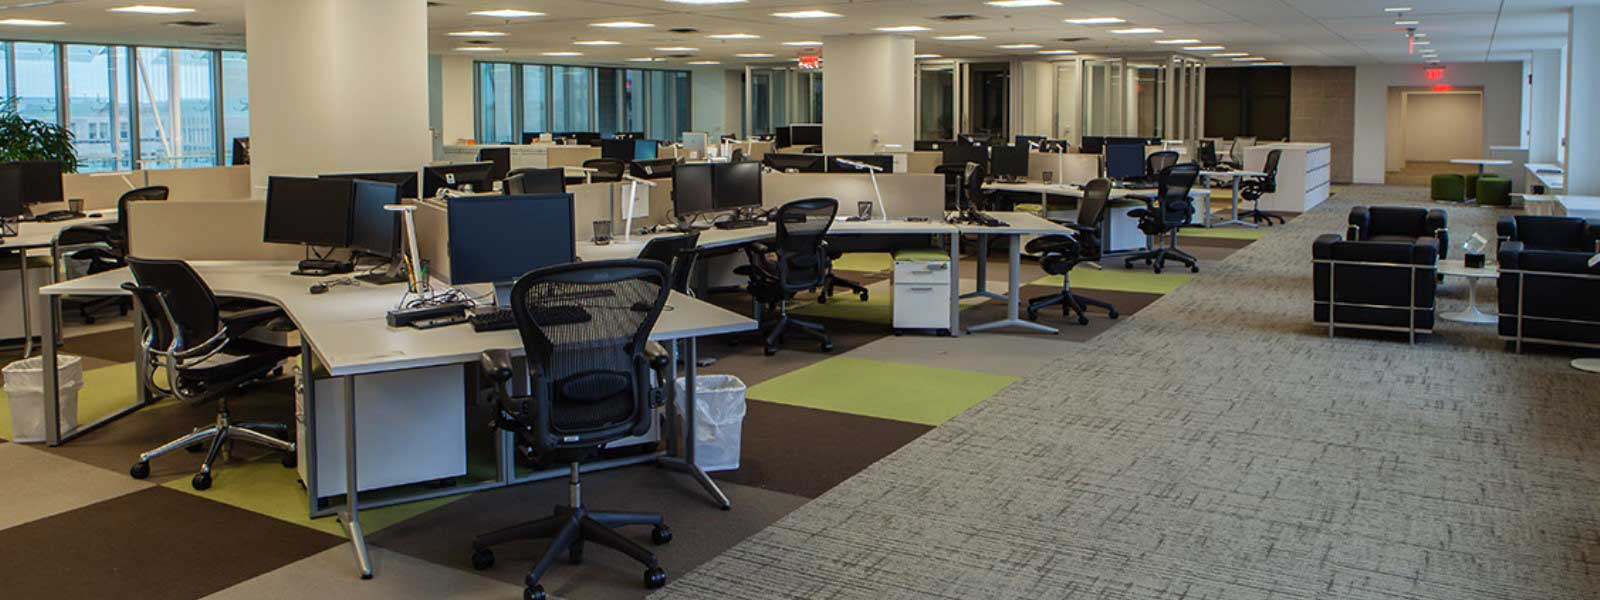 Open Floor Plan Office Furniture: Making Room For Innovation: Open-Plan Office Design Saves